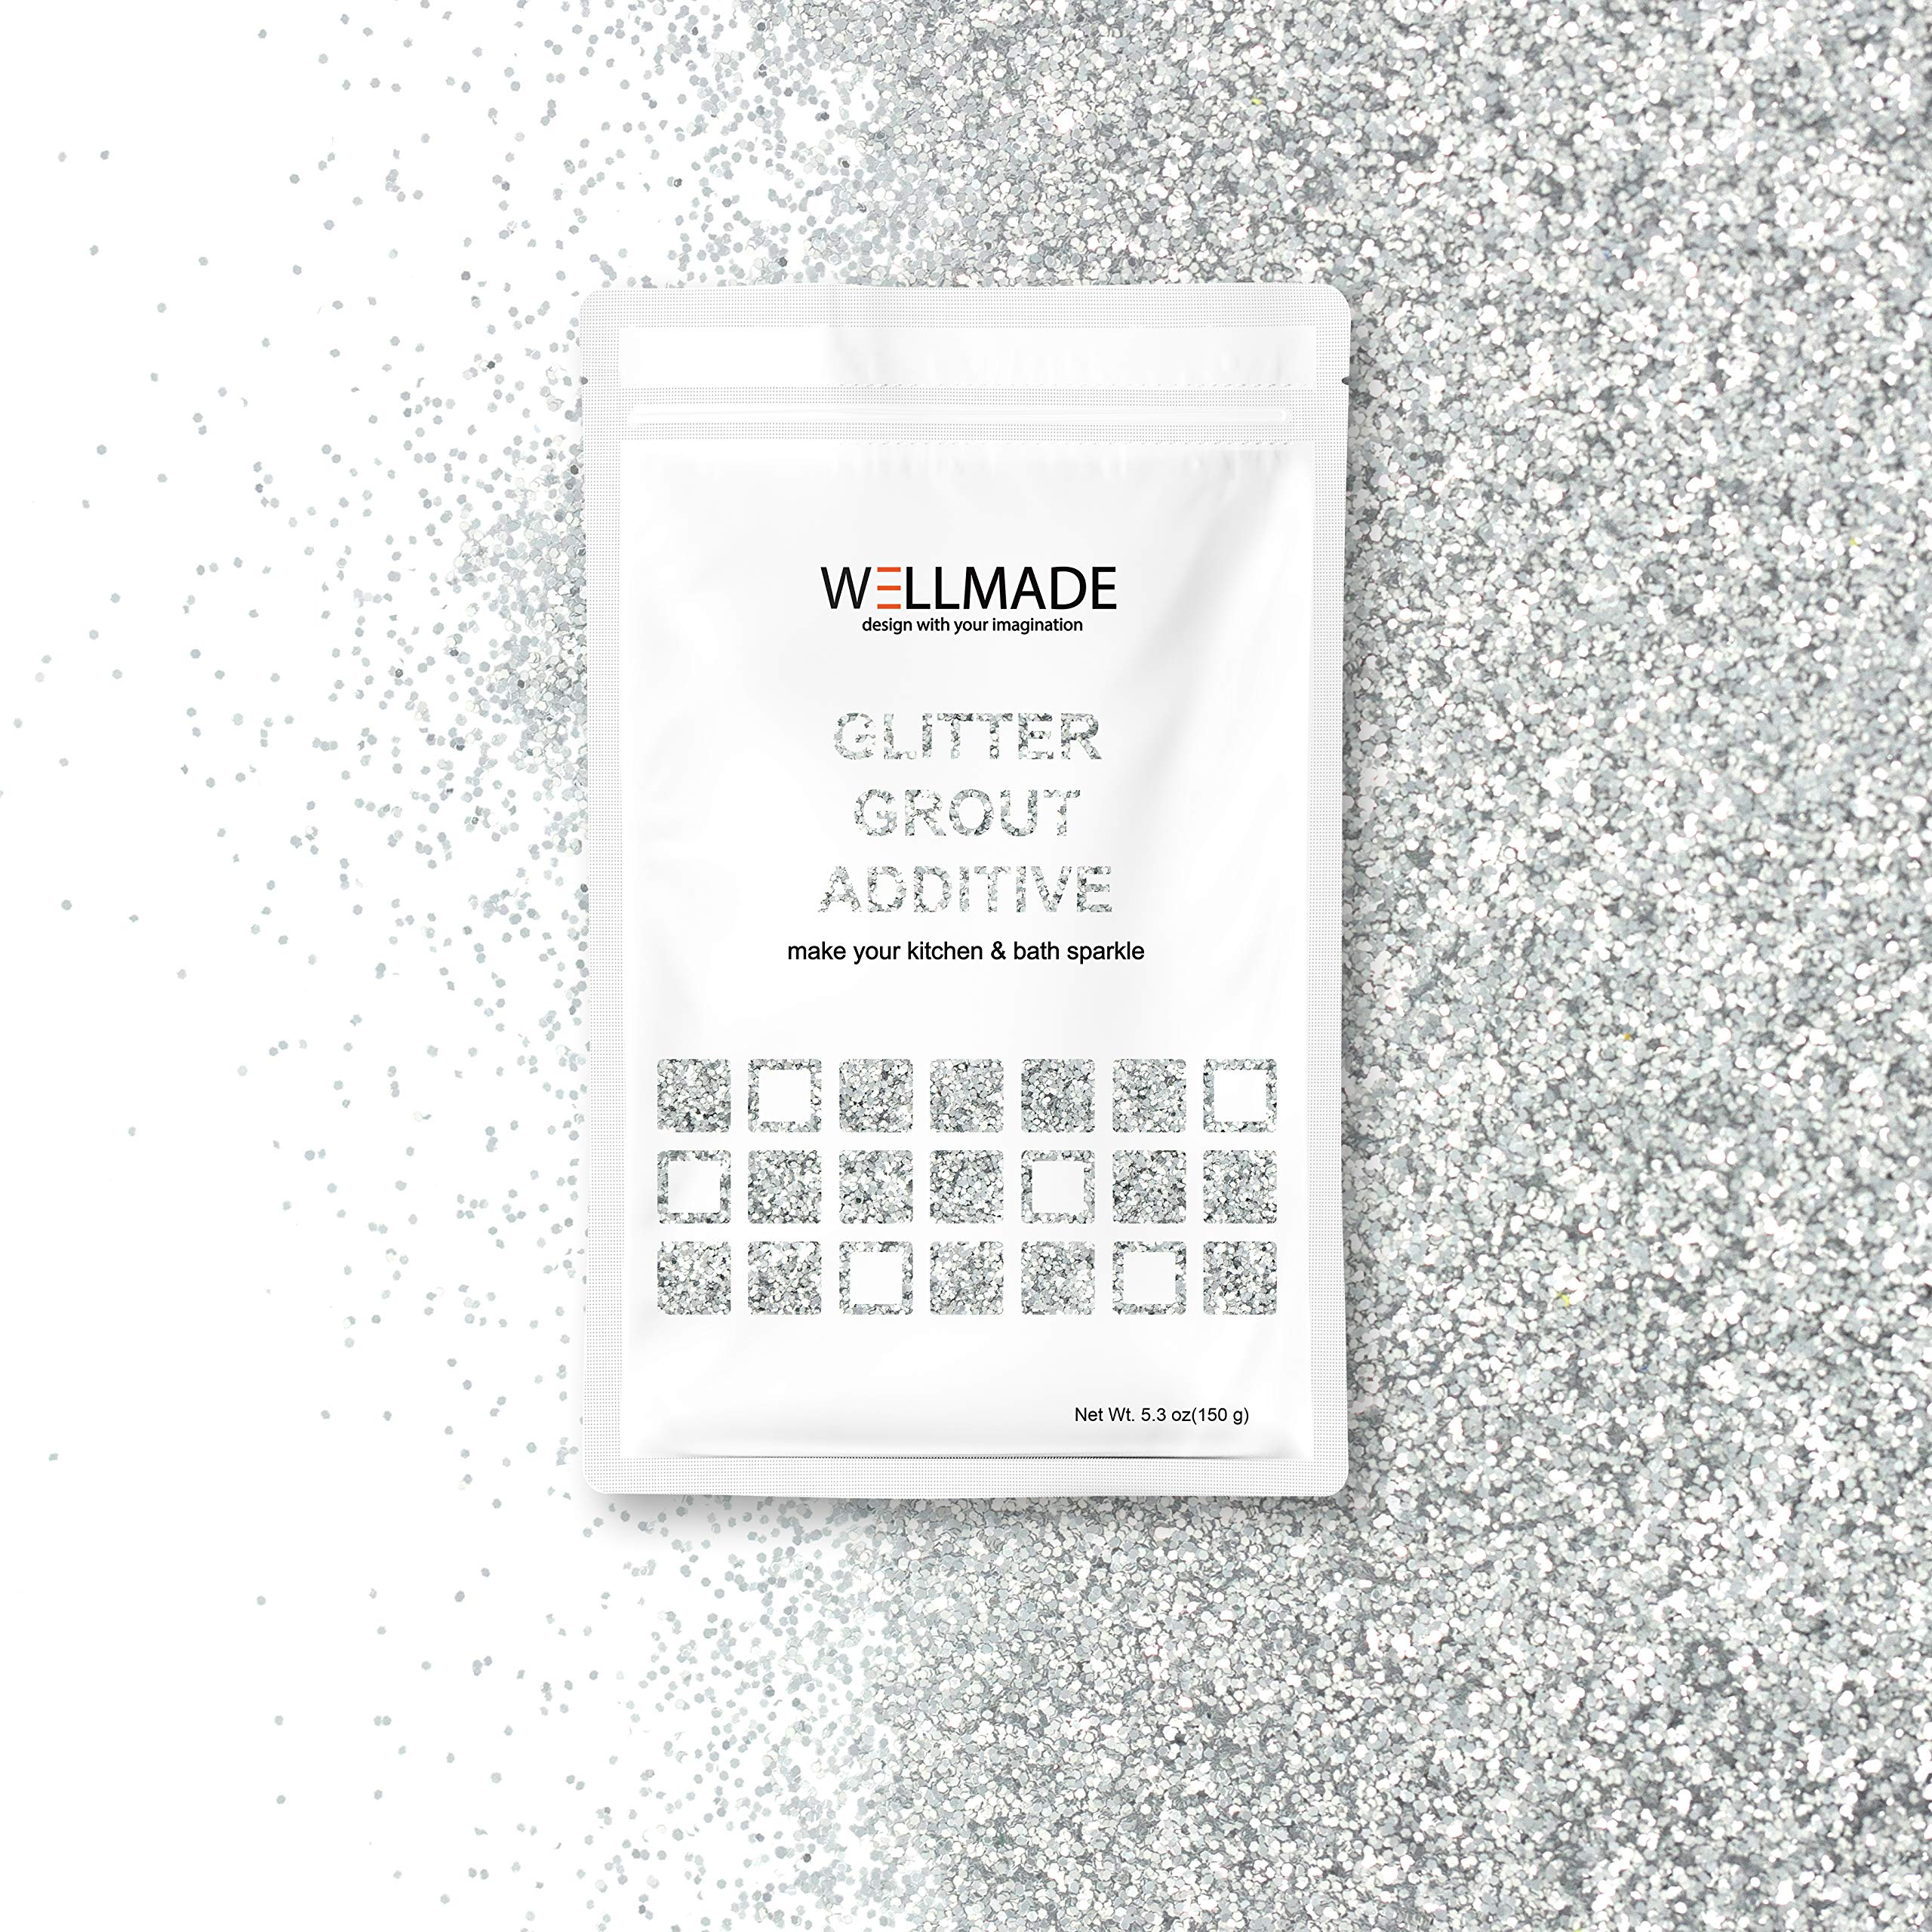 Glitter Grout Tile Additive 150g/5.3oz Glitter for Wall/Floor Tile Grout-DIY Home Wet Room Bathroom Kitchen Sparkle, Add/Mix with Epoxy Resin or Cement Based Grout (150g/5.3oz, Silver)